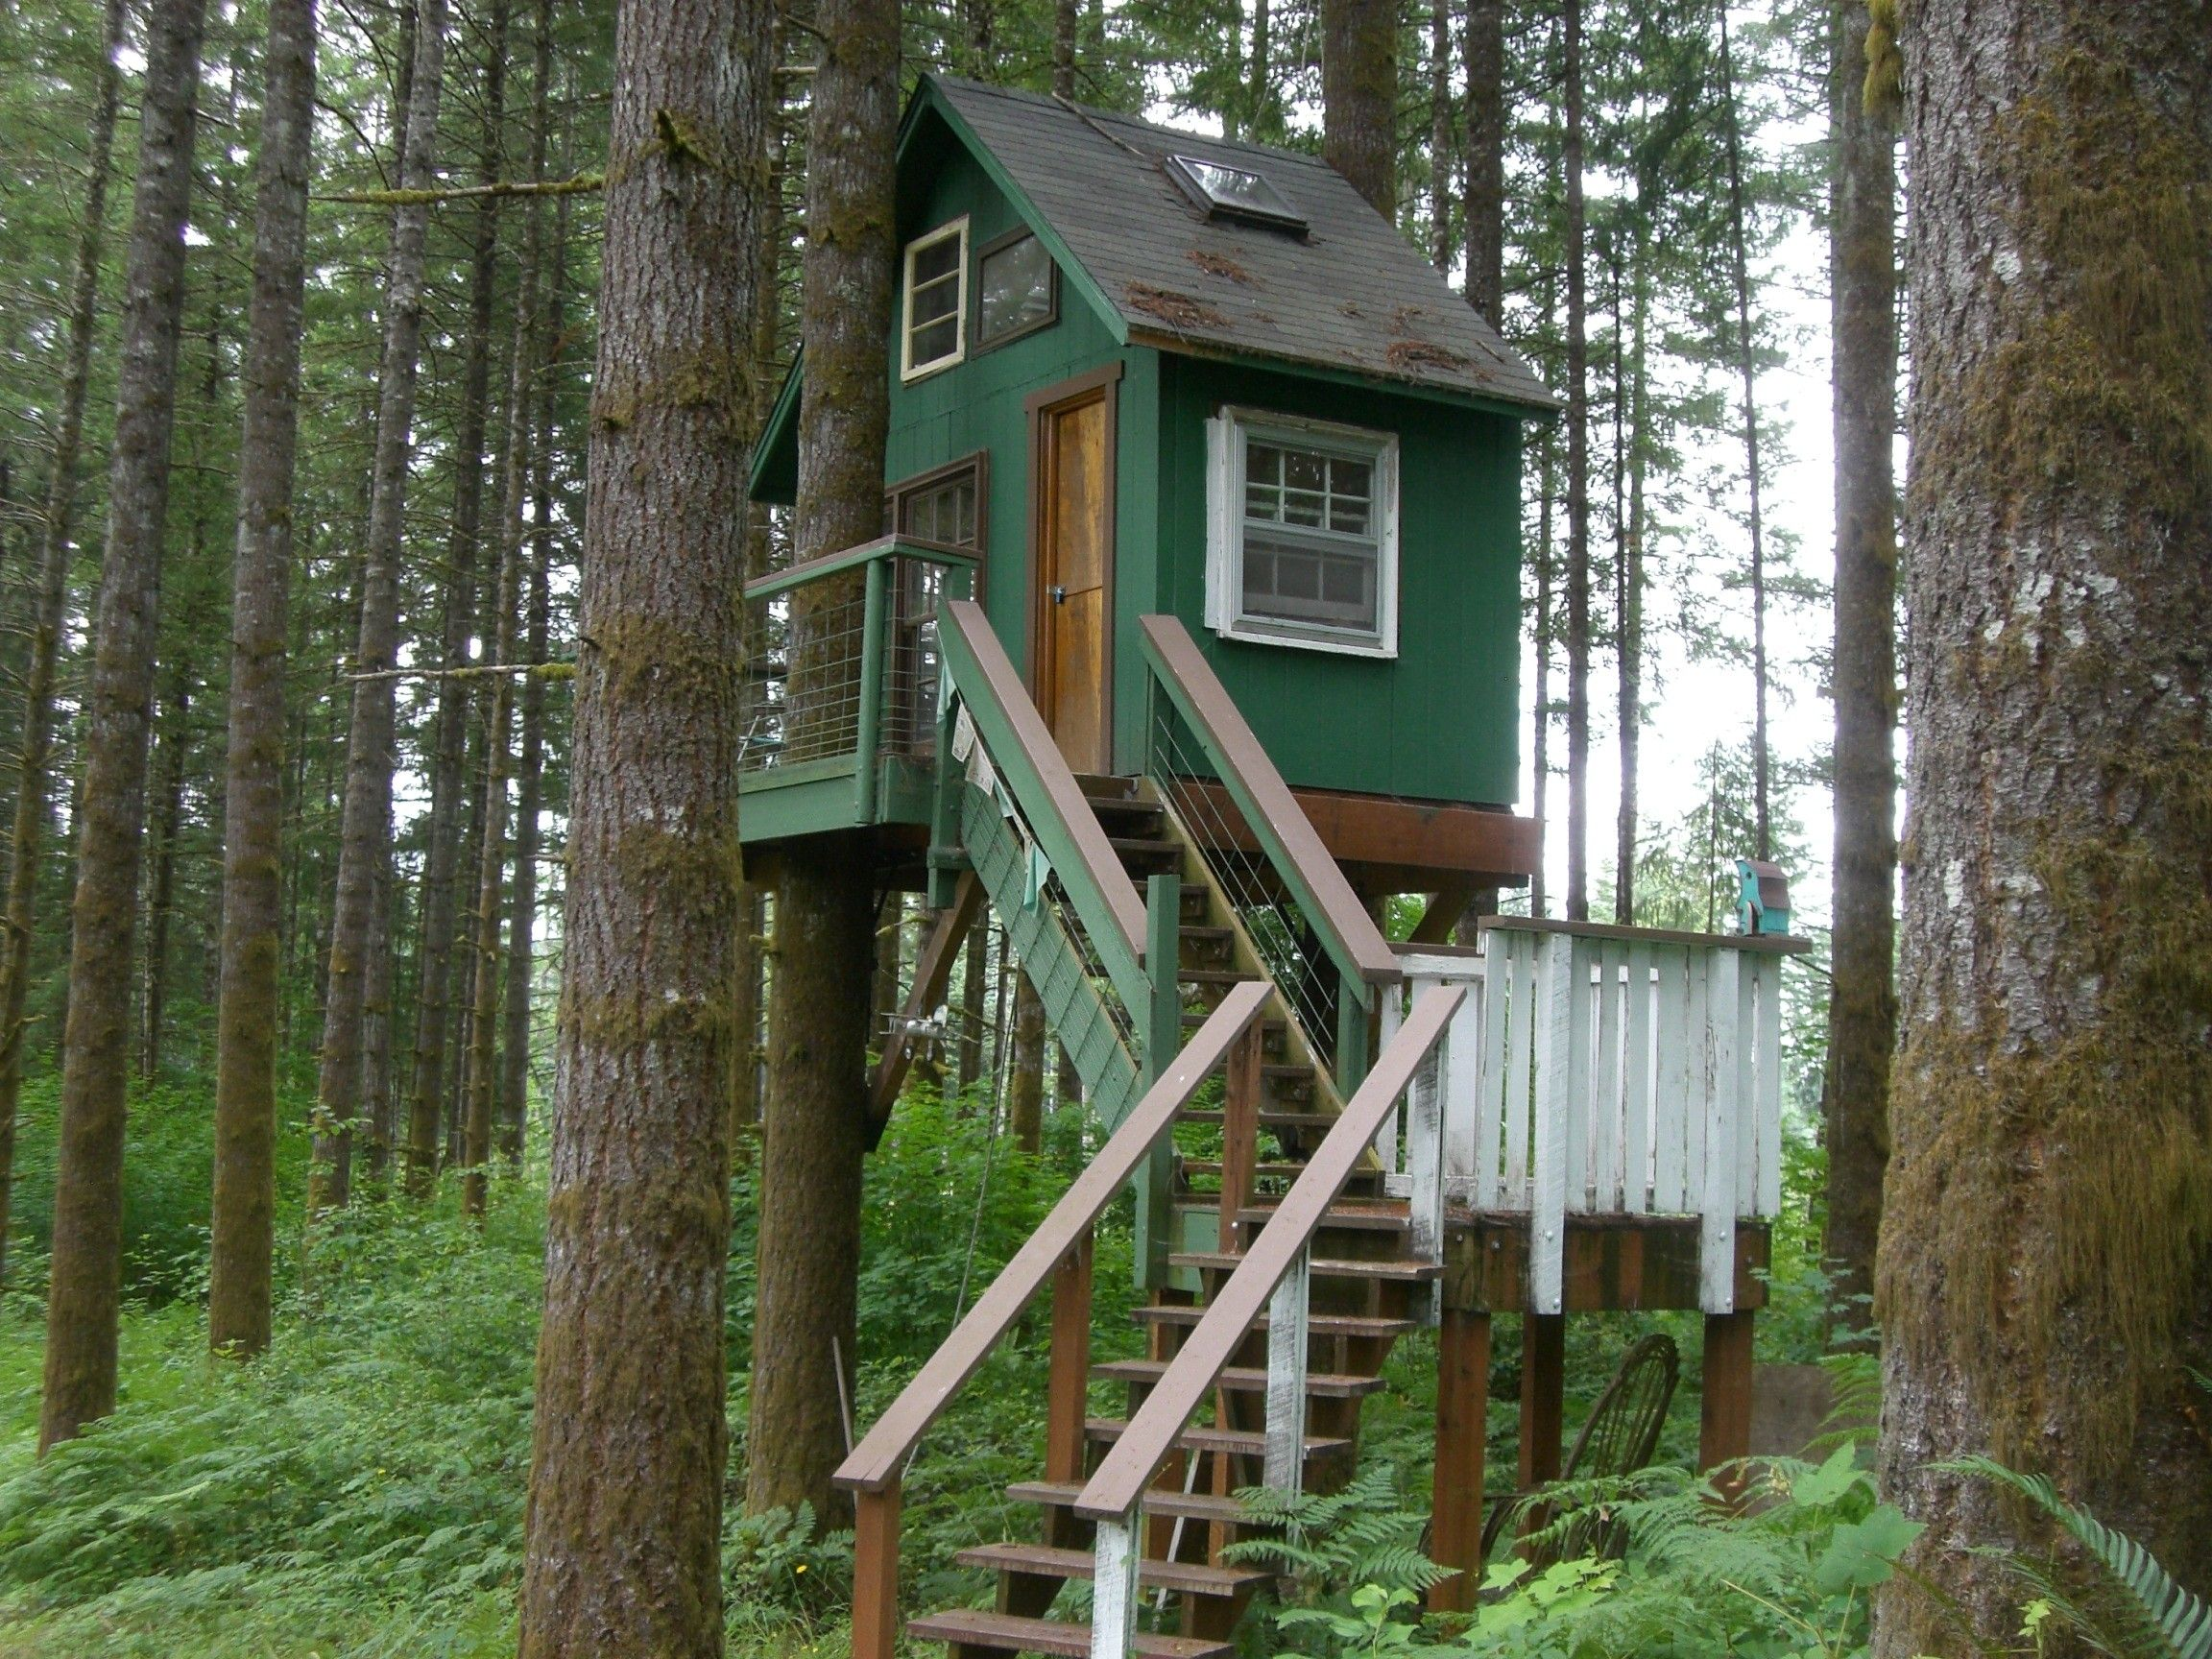 Fun Tree House Plans For Kids With Green Wooden Exterior Wall